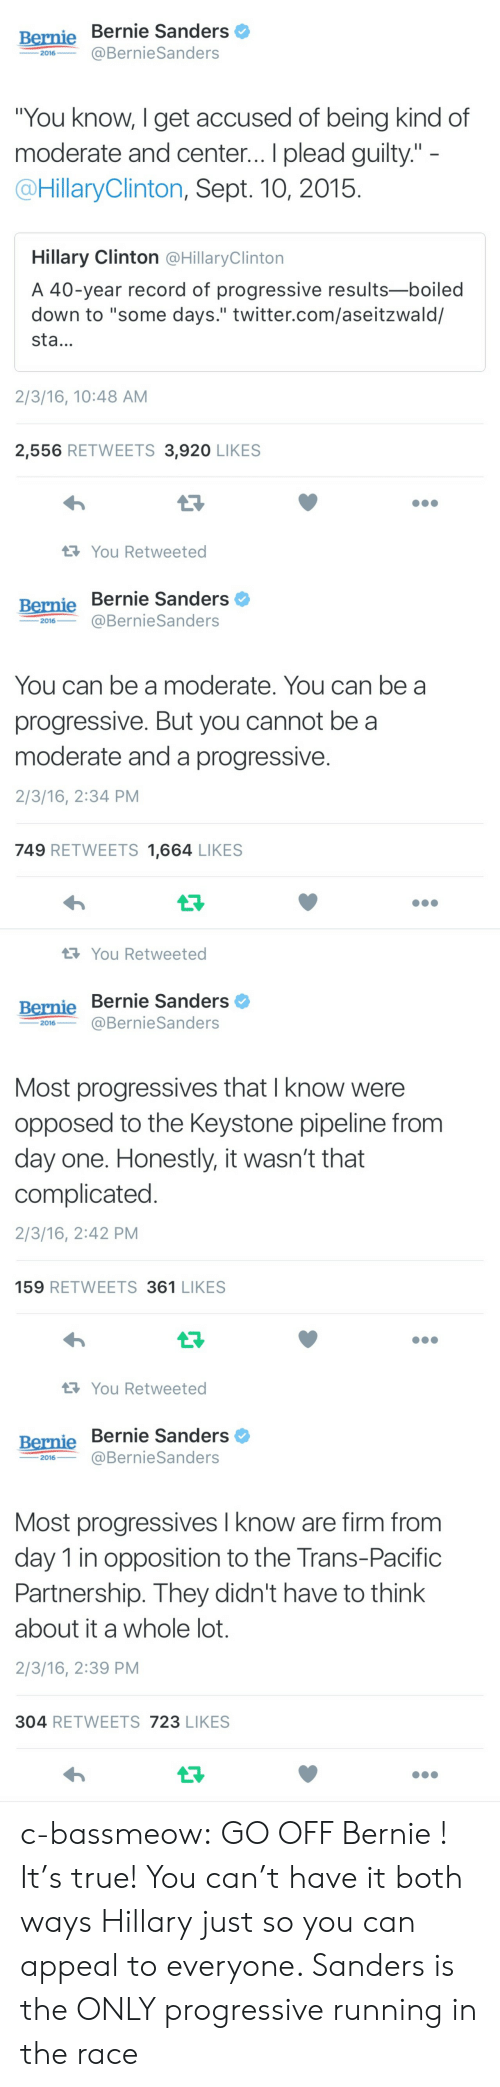 """Bernie Sanders, Hillary Clinton, and True: Bernie Bernie Sanders  2016BernieSanders  You know, I get accused of being kind of  moderate and center... I plead guilty.""""  @HillaryClinton, Sept. 10, 2015  Hillary Clinton @HillaryClintorn  A 40-year record of progressive results-boiled  down to """"some days."""" twitter.com/aseitzwald/  sta...  2/3/16, 10:48 AM  2,556 RETWEETS 3,920 LIKES   You Retweeted  Bernie Bernie Sanders  ー2016-一@BernieSanders  You can be a moderate. You can be a  progressive. But you cannot be a  moderate and a progressive.  2/3/16, 2:34 PM  749 RETWEETS 1,664 LIKES   You Retweeted  Bernie Bernie Sanders  ー2016--@BernieSanders  Most progressives that I know were  opposed to the Keystone pipeline from  day one. Honestly, it wasn't that  complicated  2/3/16, 2:42 PM  159 RETWEETS 361 LIKES   You Retweeted  Bernie Bernie Sanders  2016@BernieSanders  Most progressives I know are firm from  day 1 in opposition to the Trans-Pacific  Partnership. They didn't have to think  about it a whole lot.  2/3/16, 2:39 PM  304 RETWEETS 723 LIKES c-bassmeow:  GO OFF Bernie ! It's true! You can't have it both ways Hillary just so you can appeal to everyone. Sanders is the ONLY progressive running in the race"""